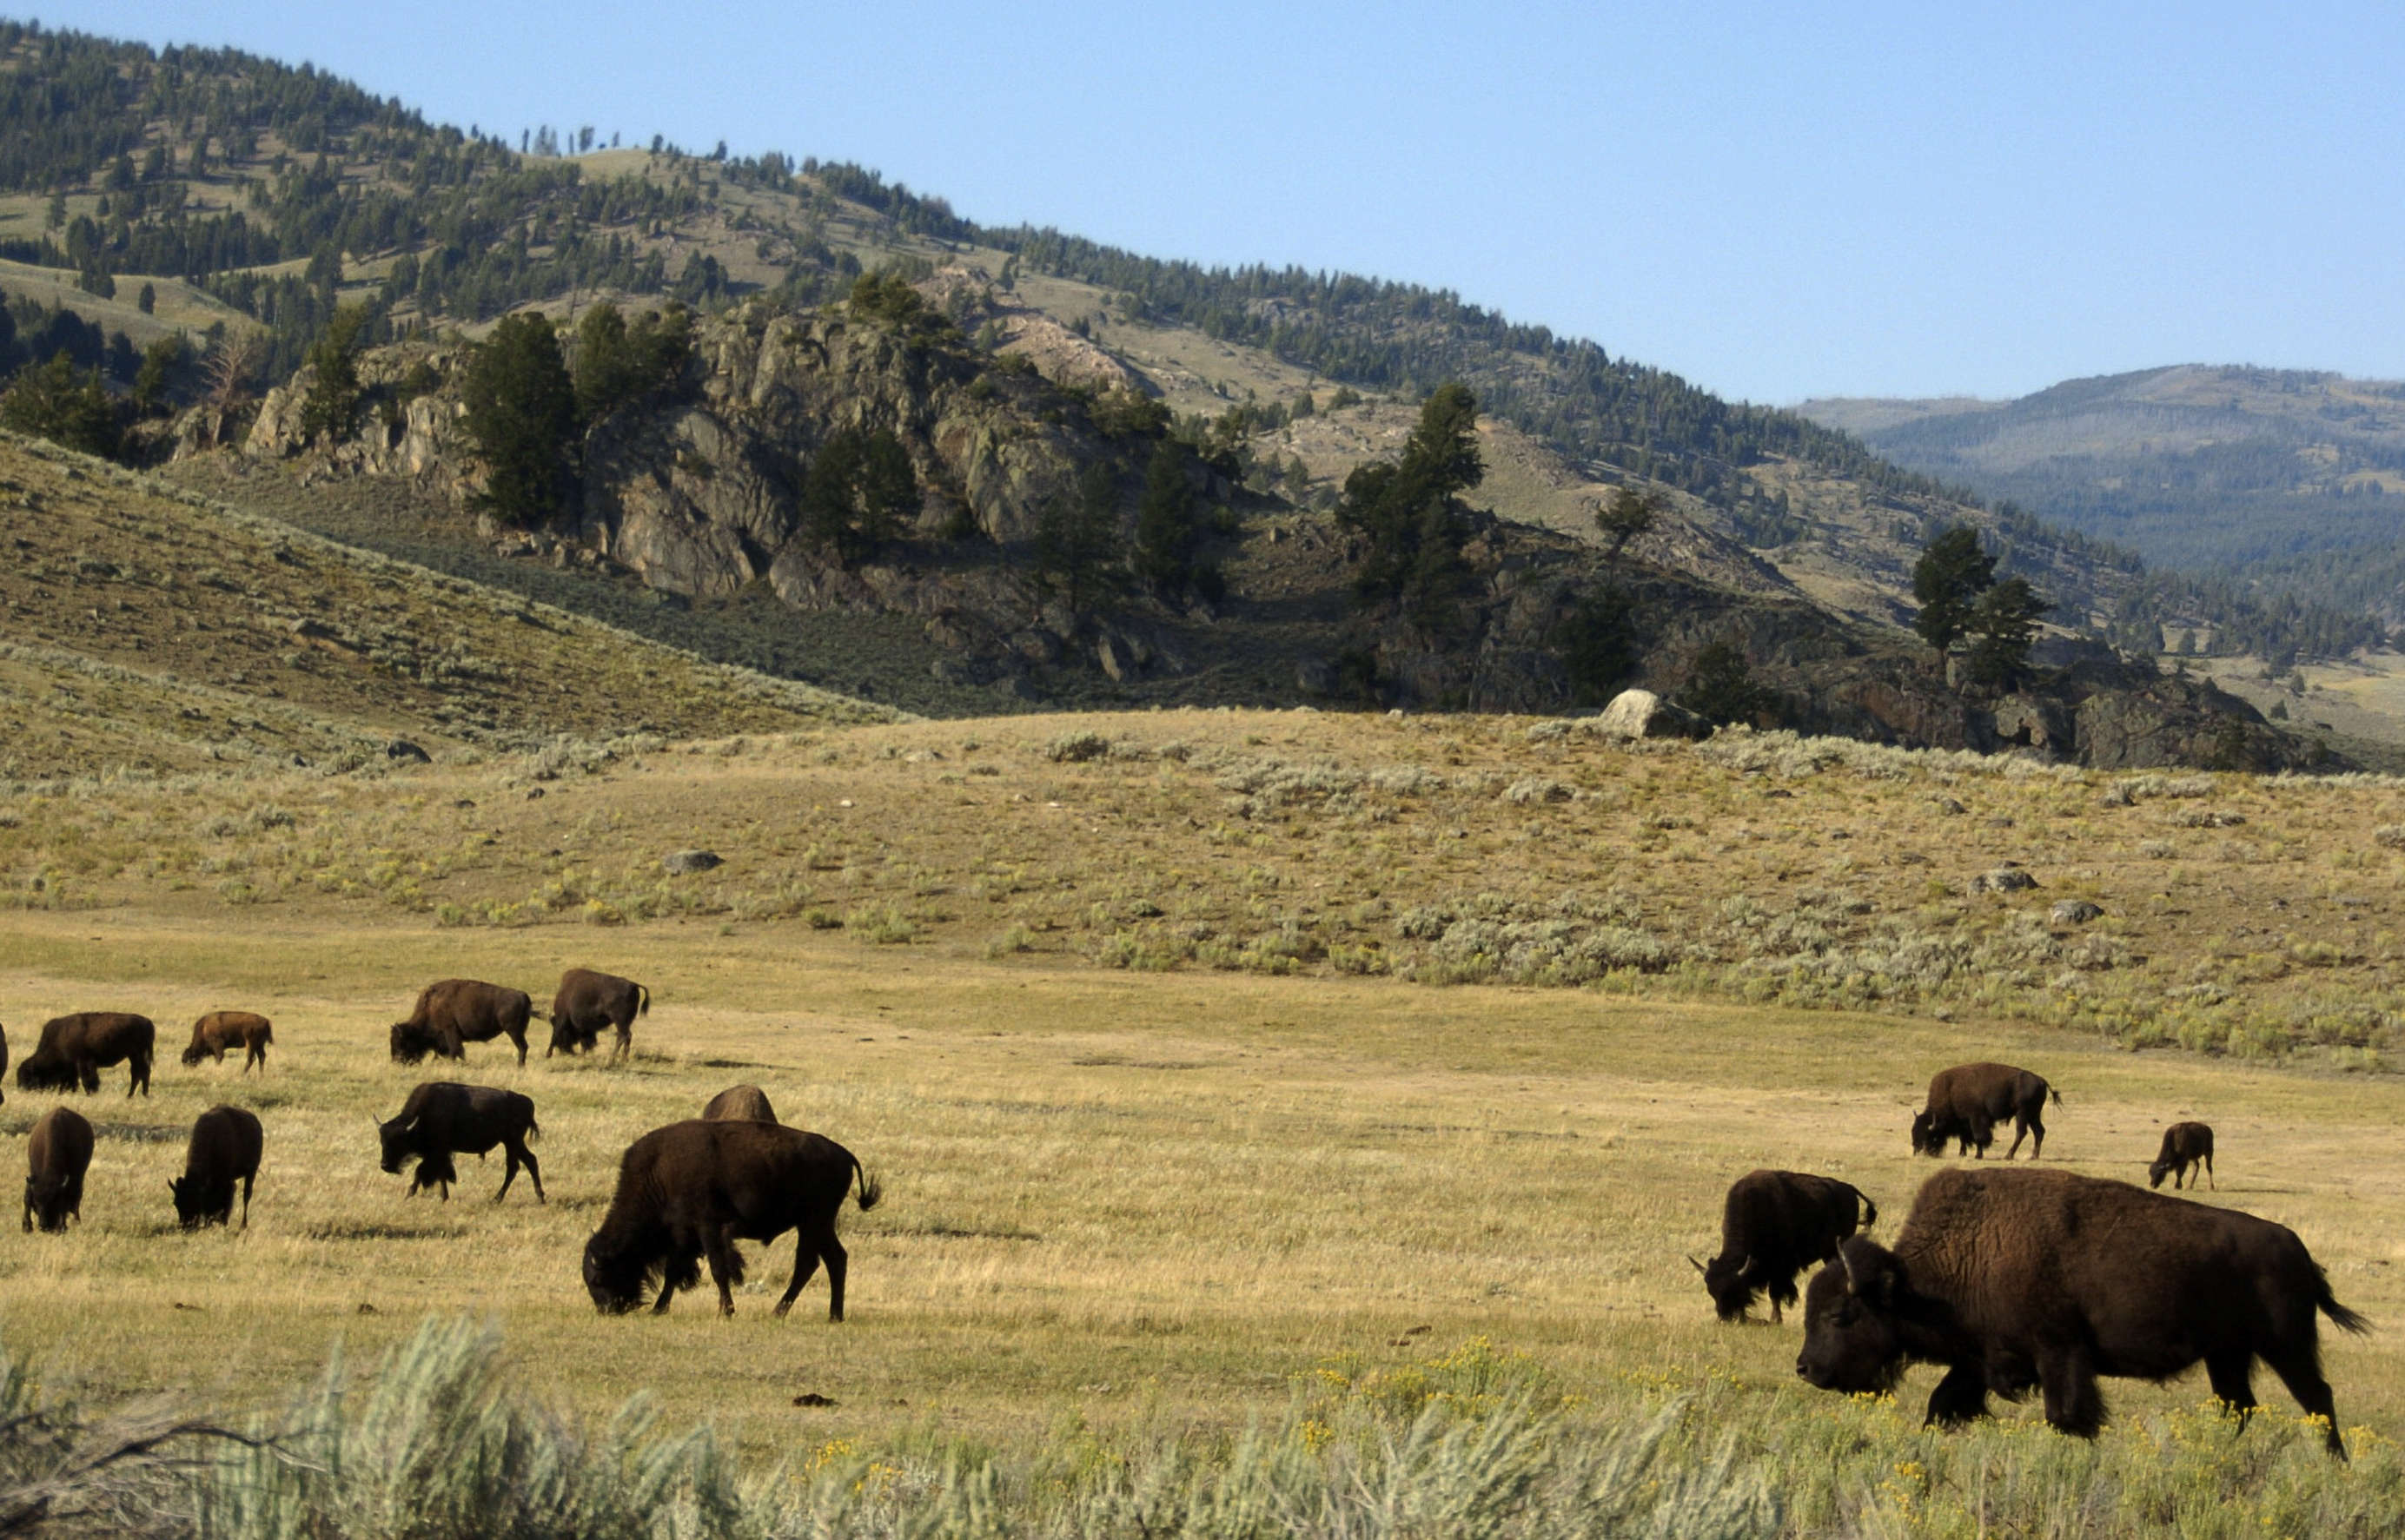 Hunts threaten population of Yellowstone bison, group says